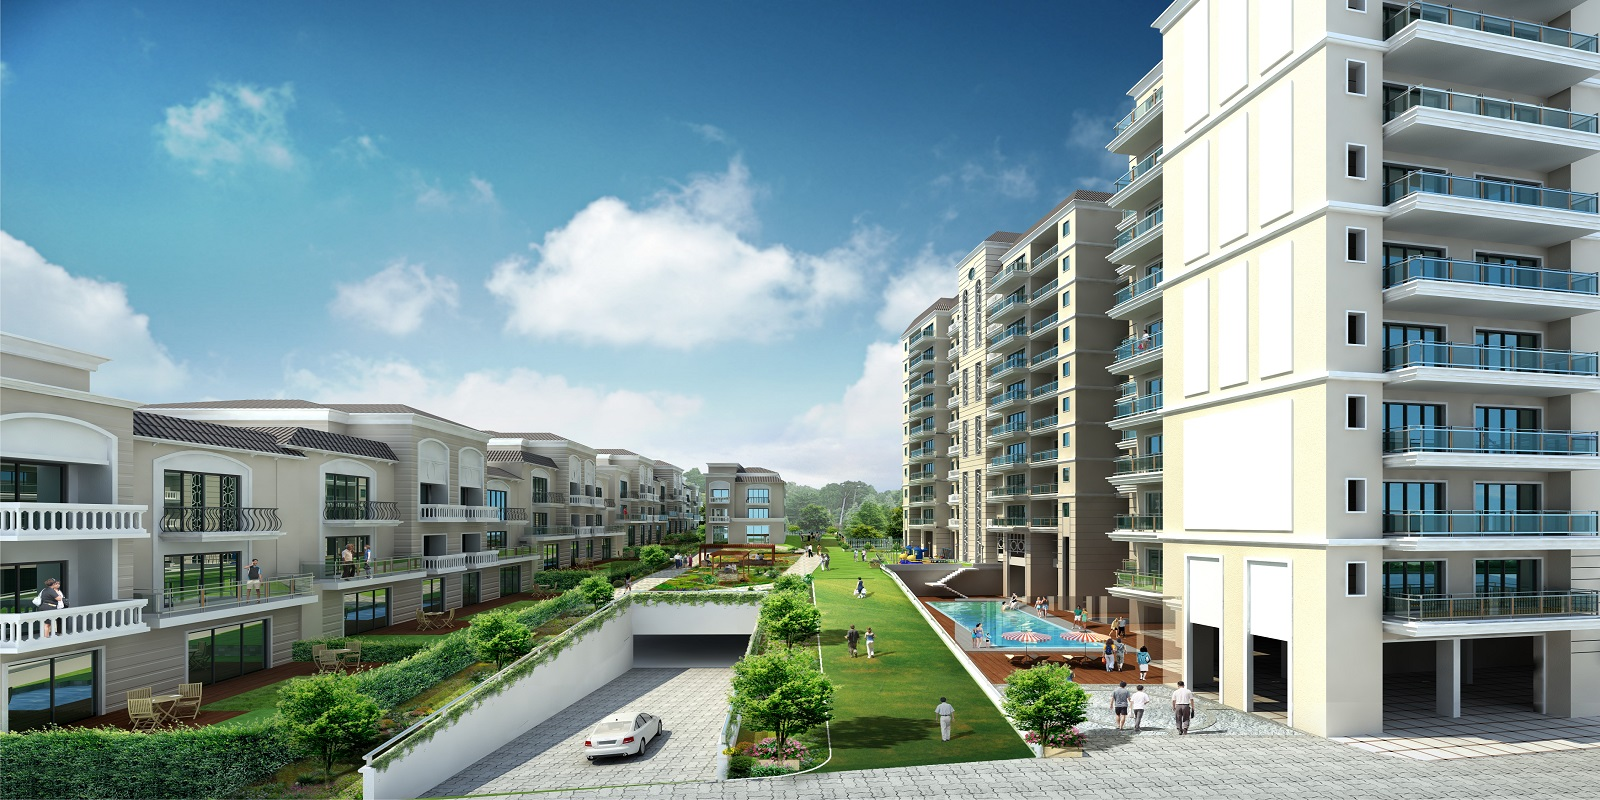 dlf kings court villa project large image1